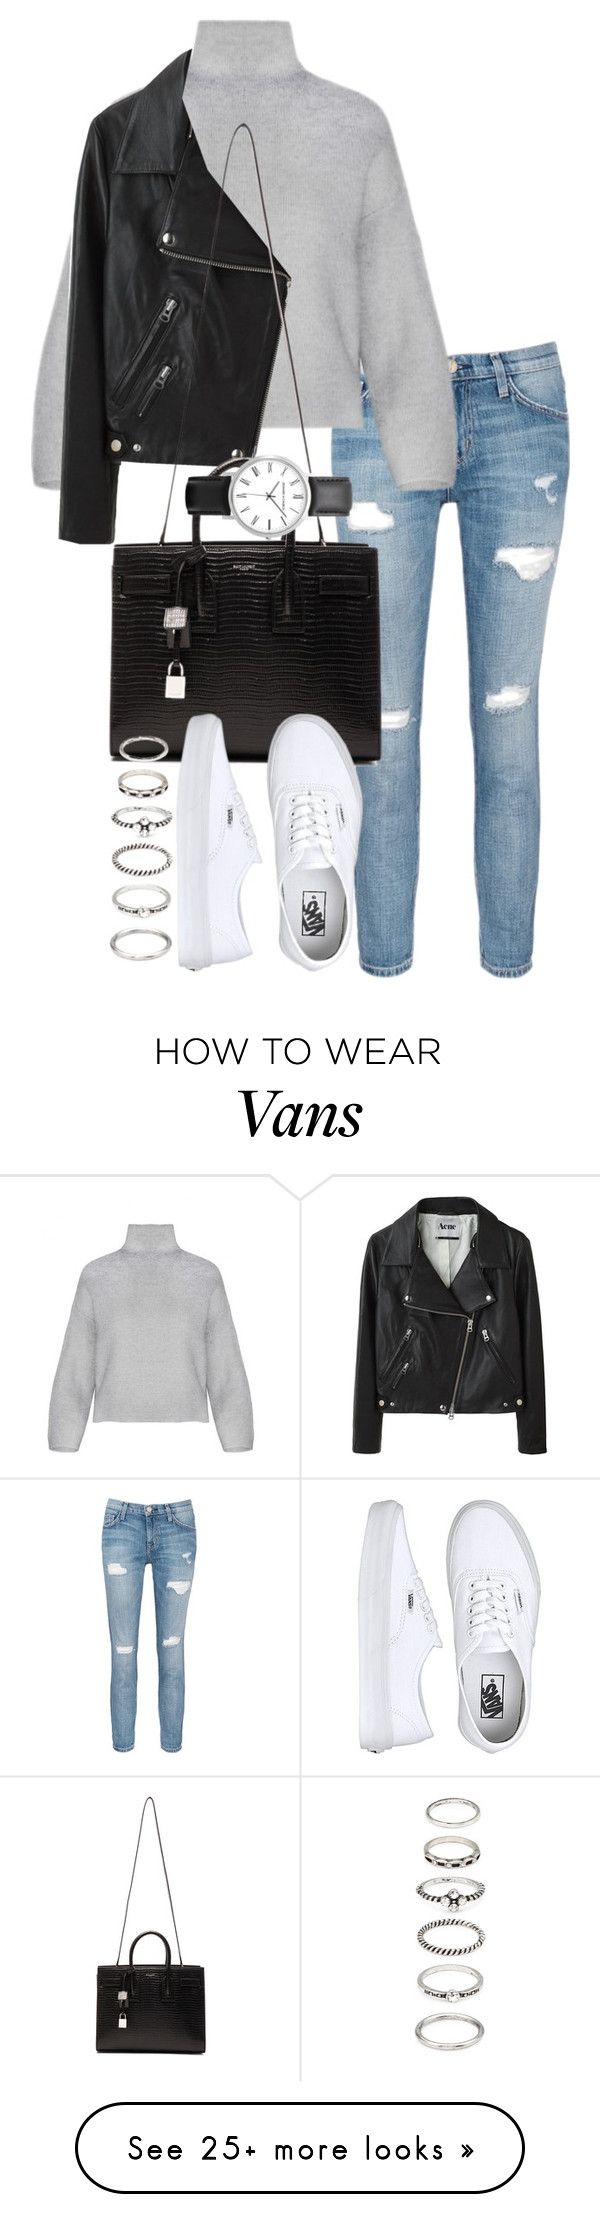 """""""Unbenannt #1406"""" by tyra482 on Polyvore featuring Current/Elliott, Acne Studios, Yves Saint Laurent, Vans and Forever 21"""